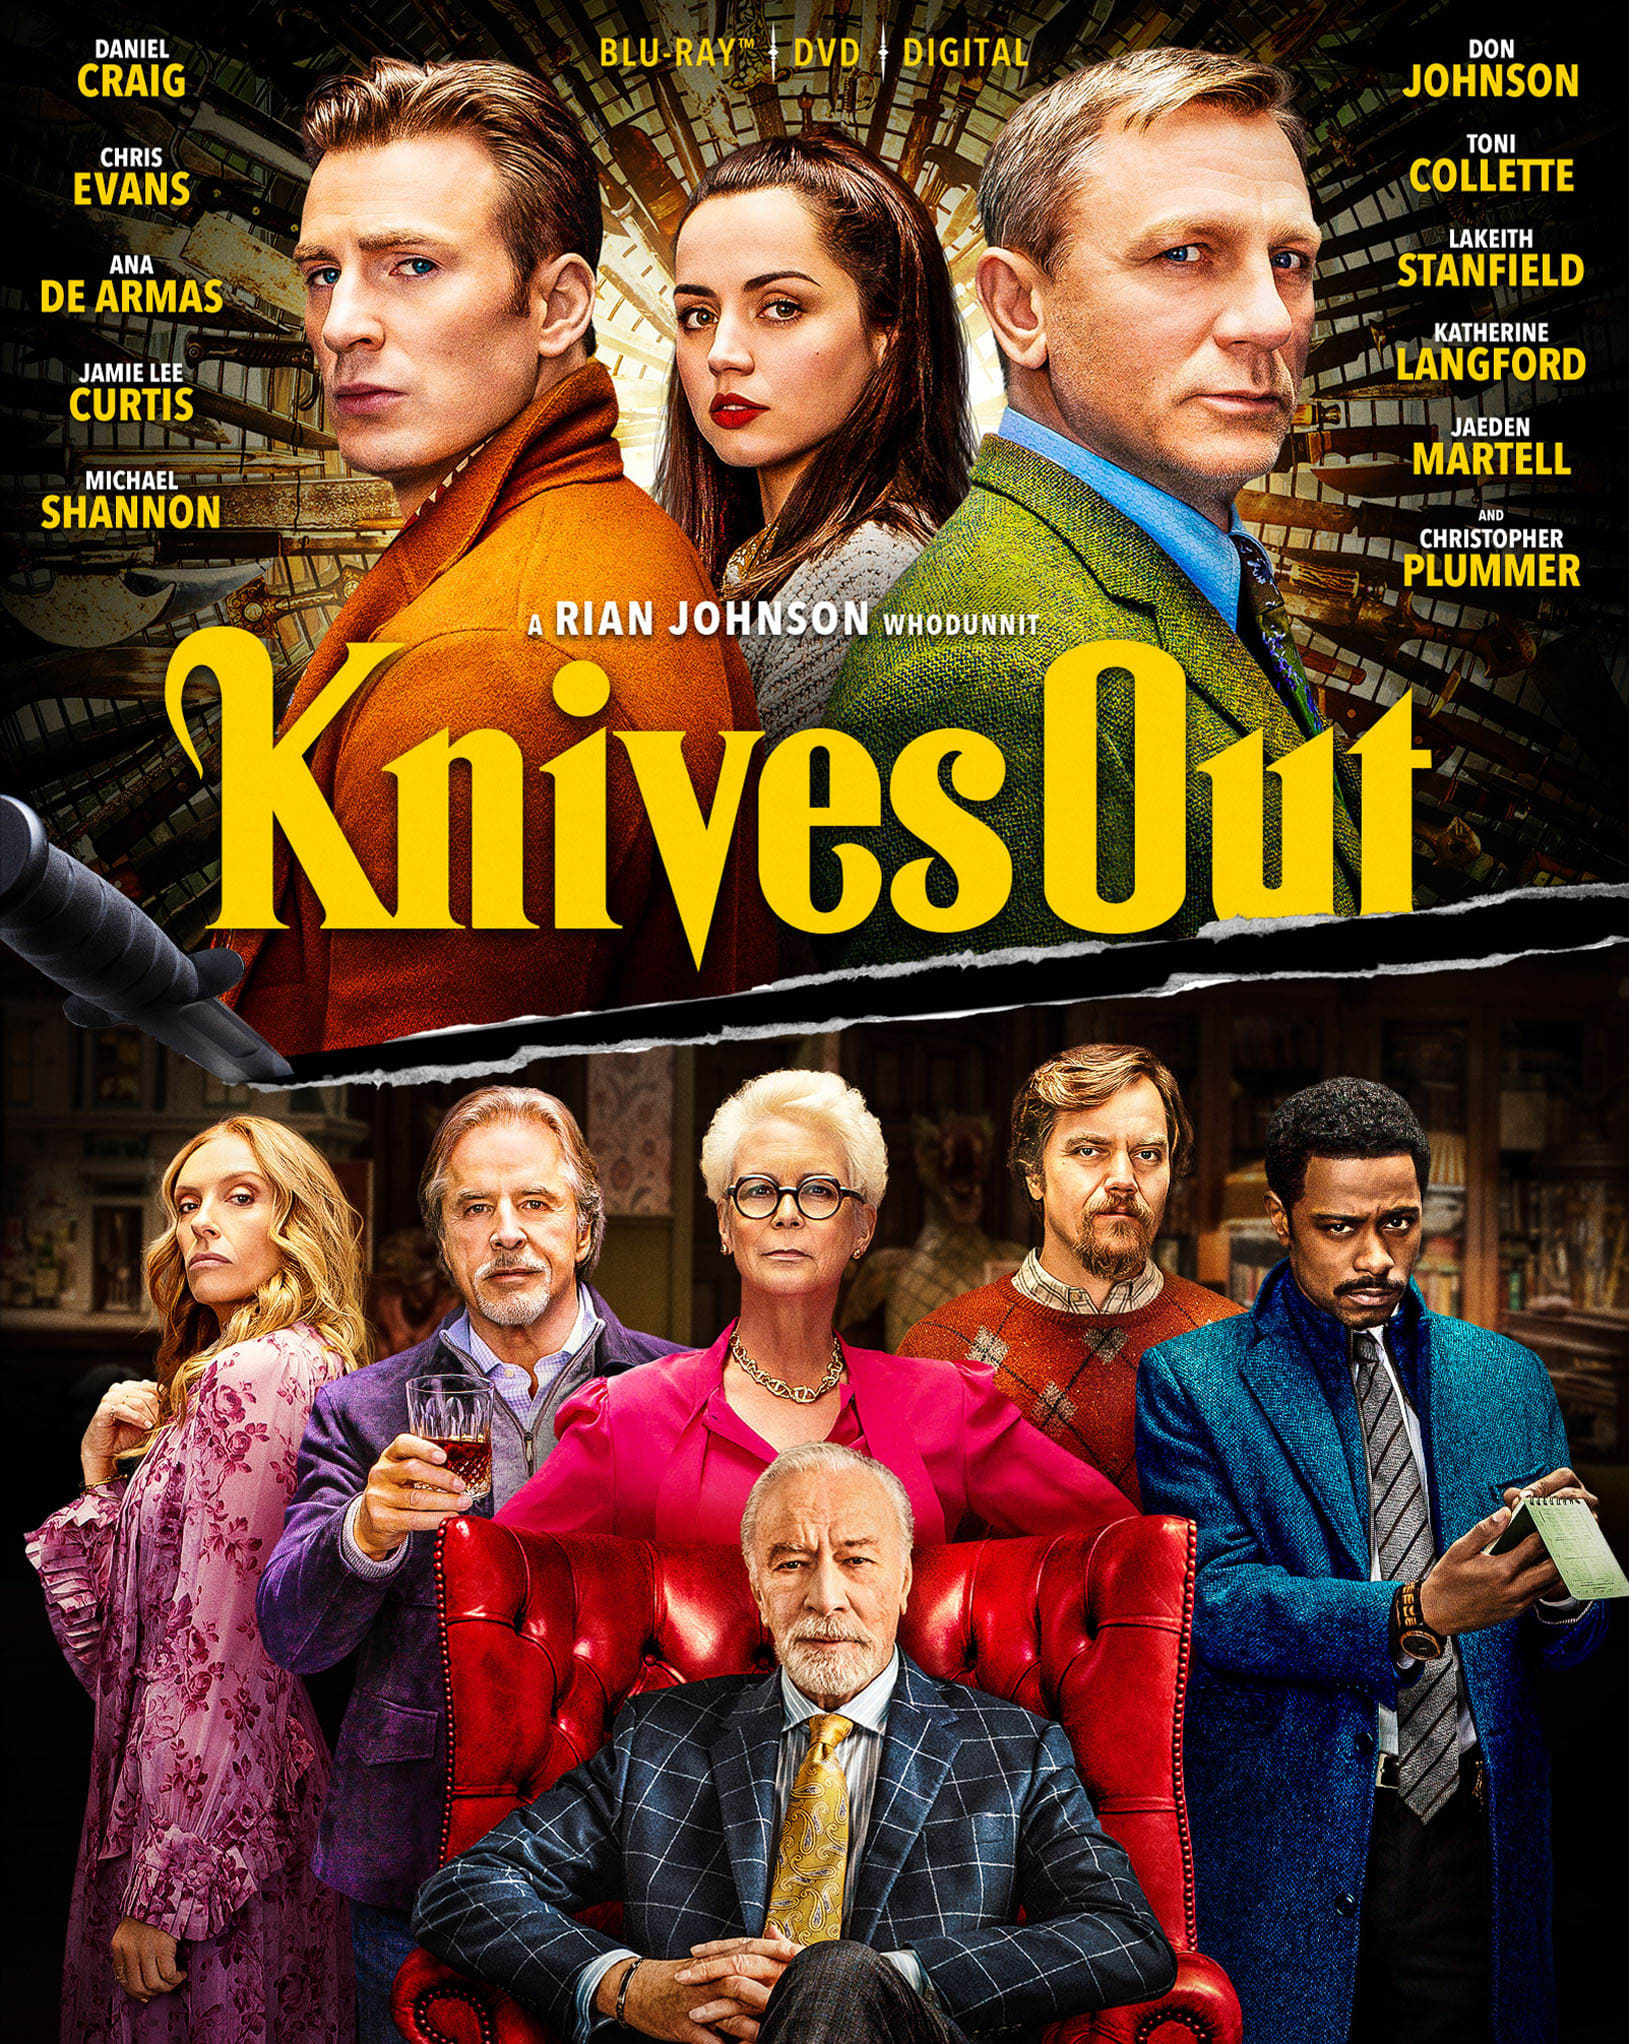 Knives Out (DVD + Digital) [Blu-ray]